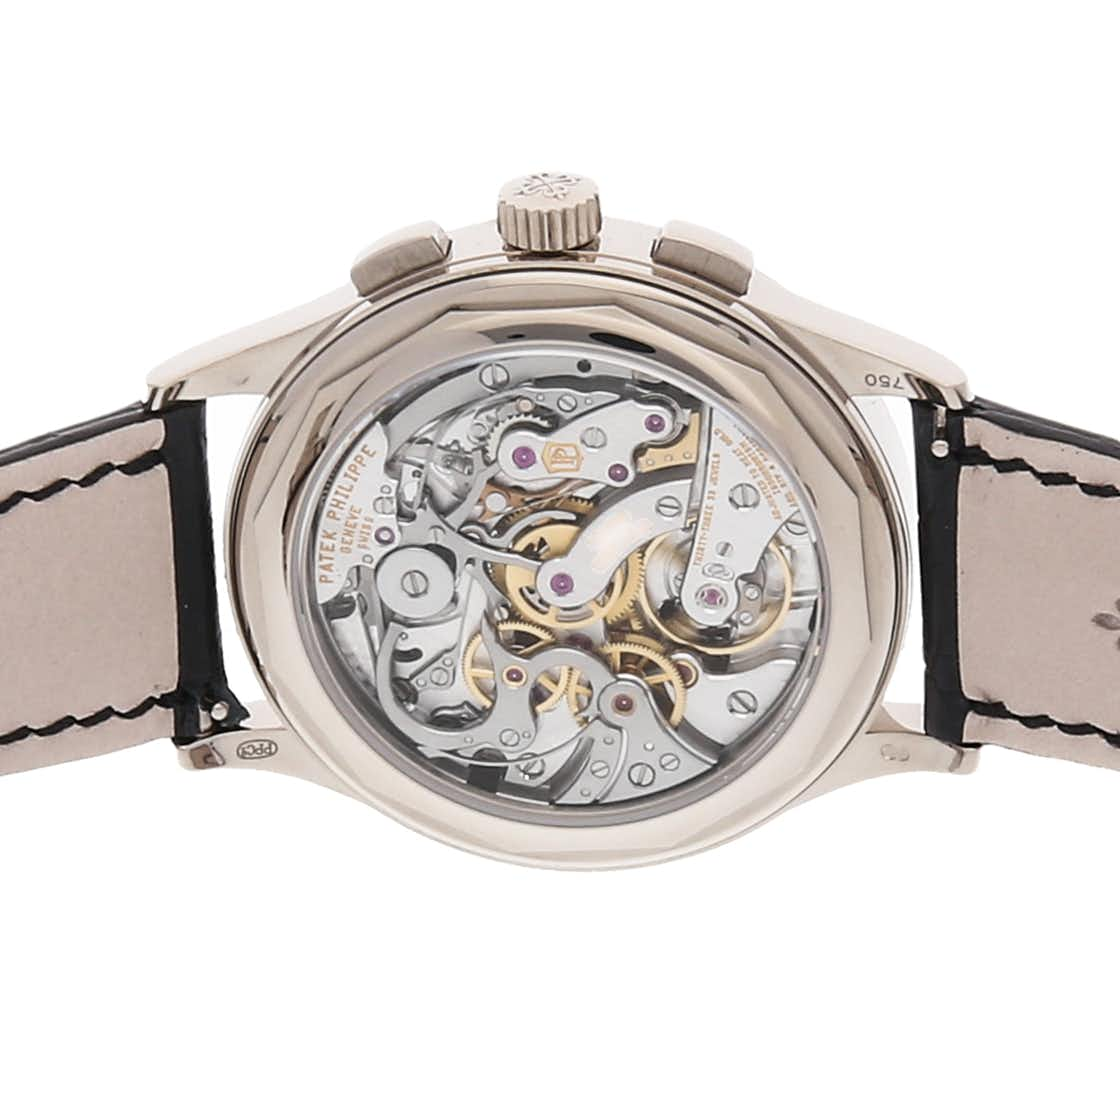 "Patek Philippe Complications Chronograph ""Tiffany & Co."" 5170G-010"